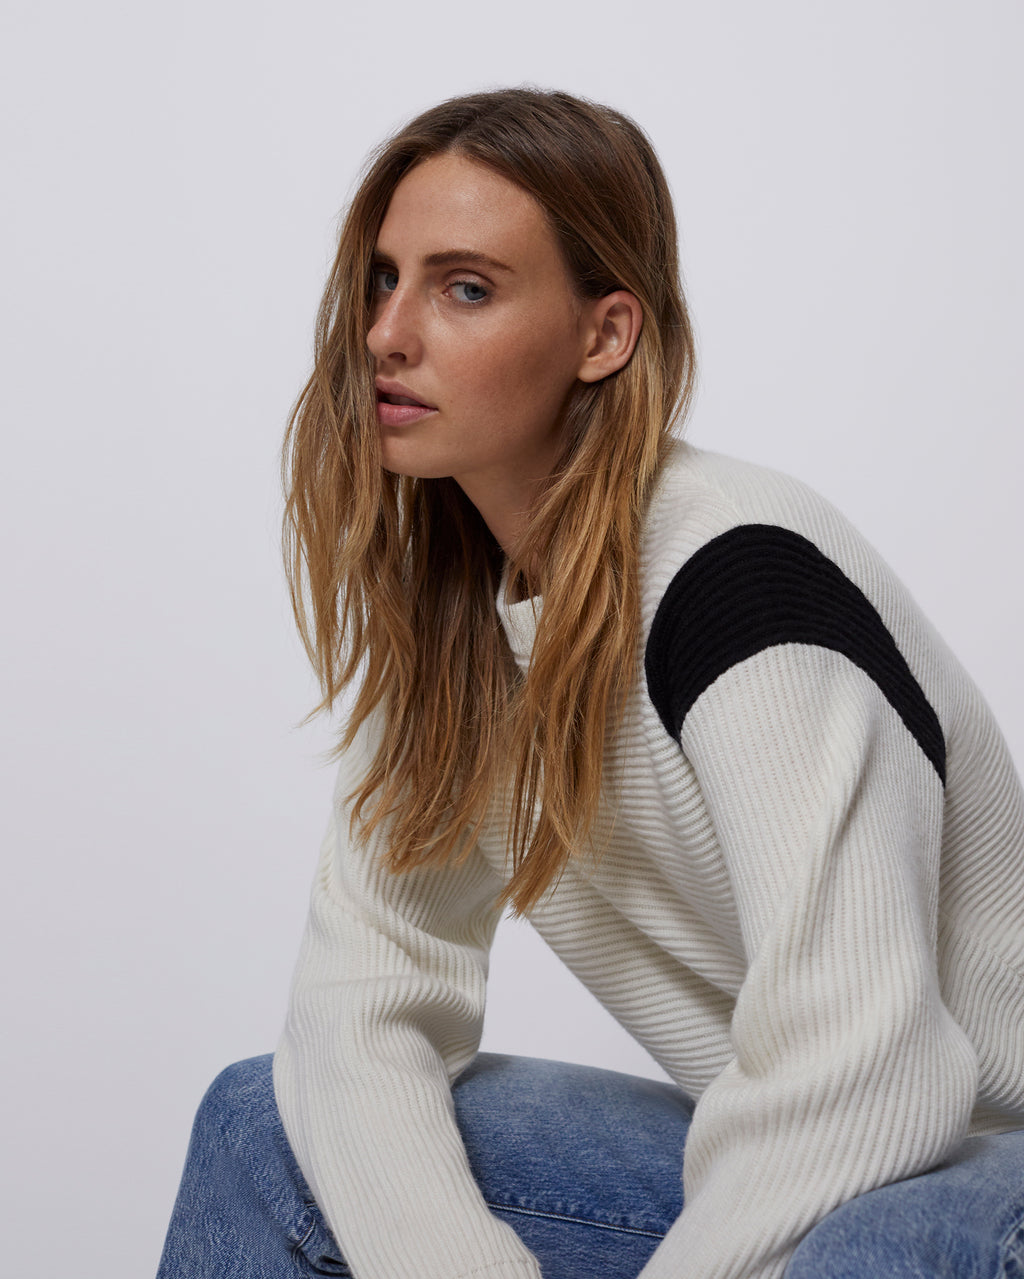 The April Sweater in Powder White/Black